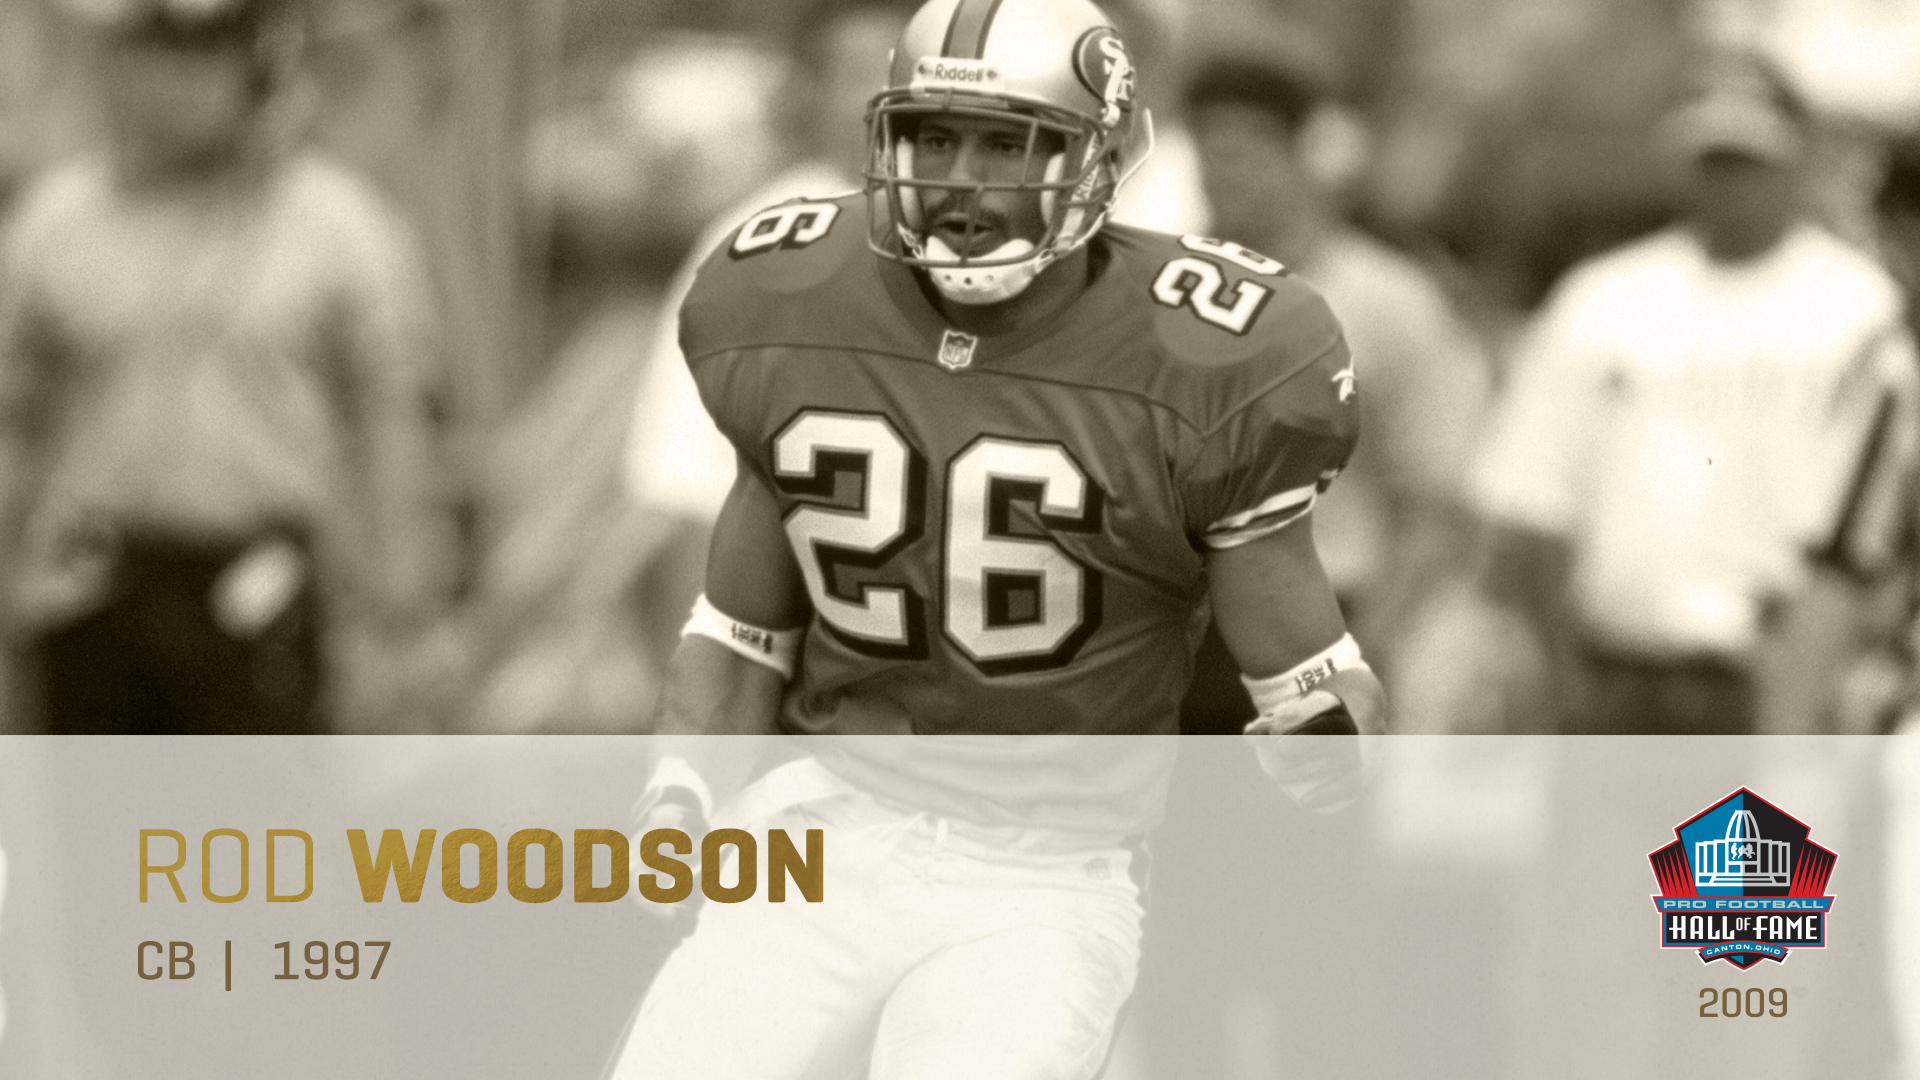 HOF-headers-RodWoodson